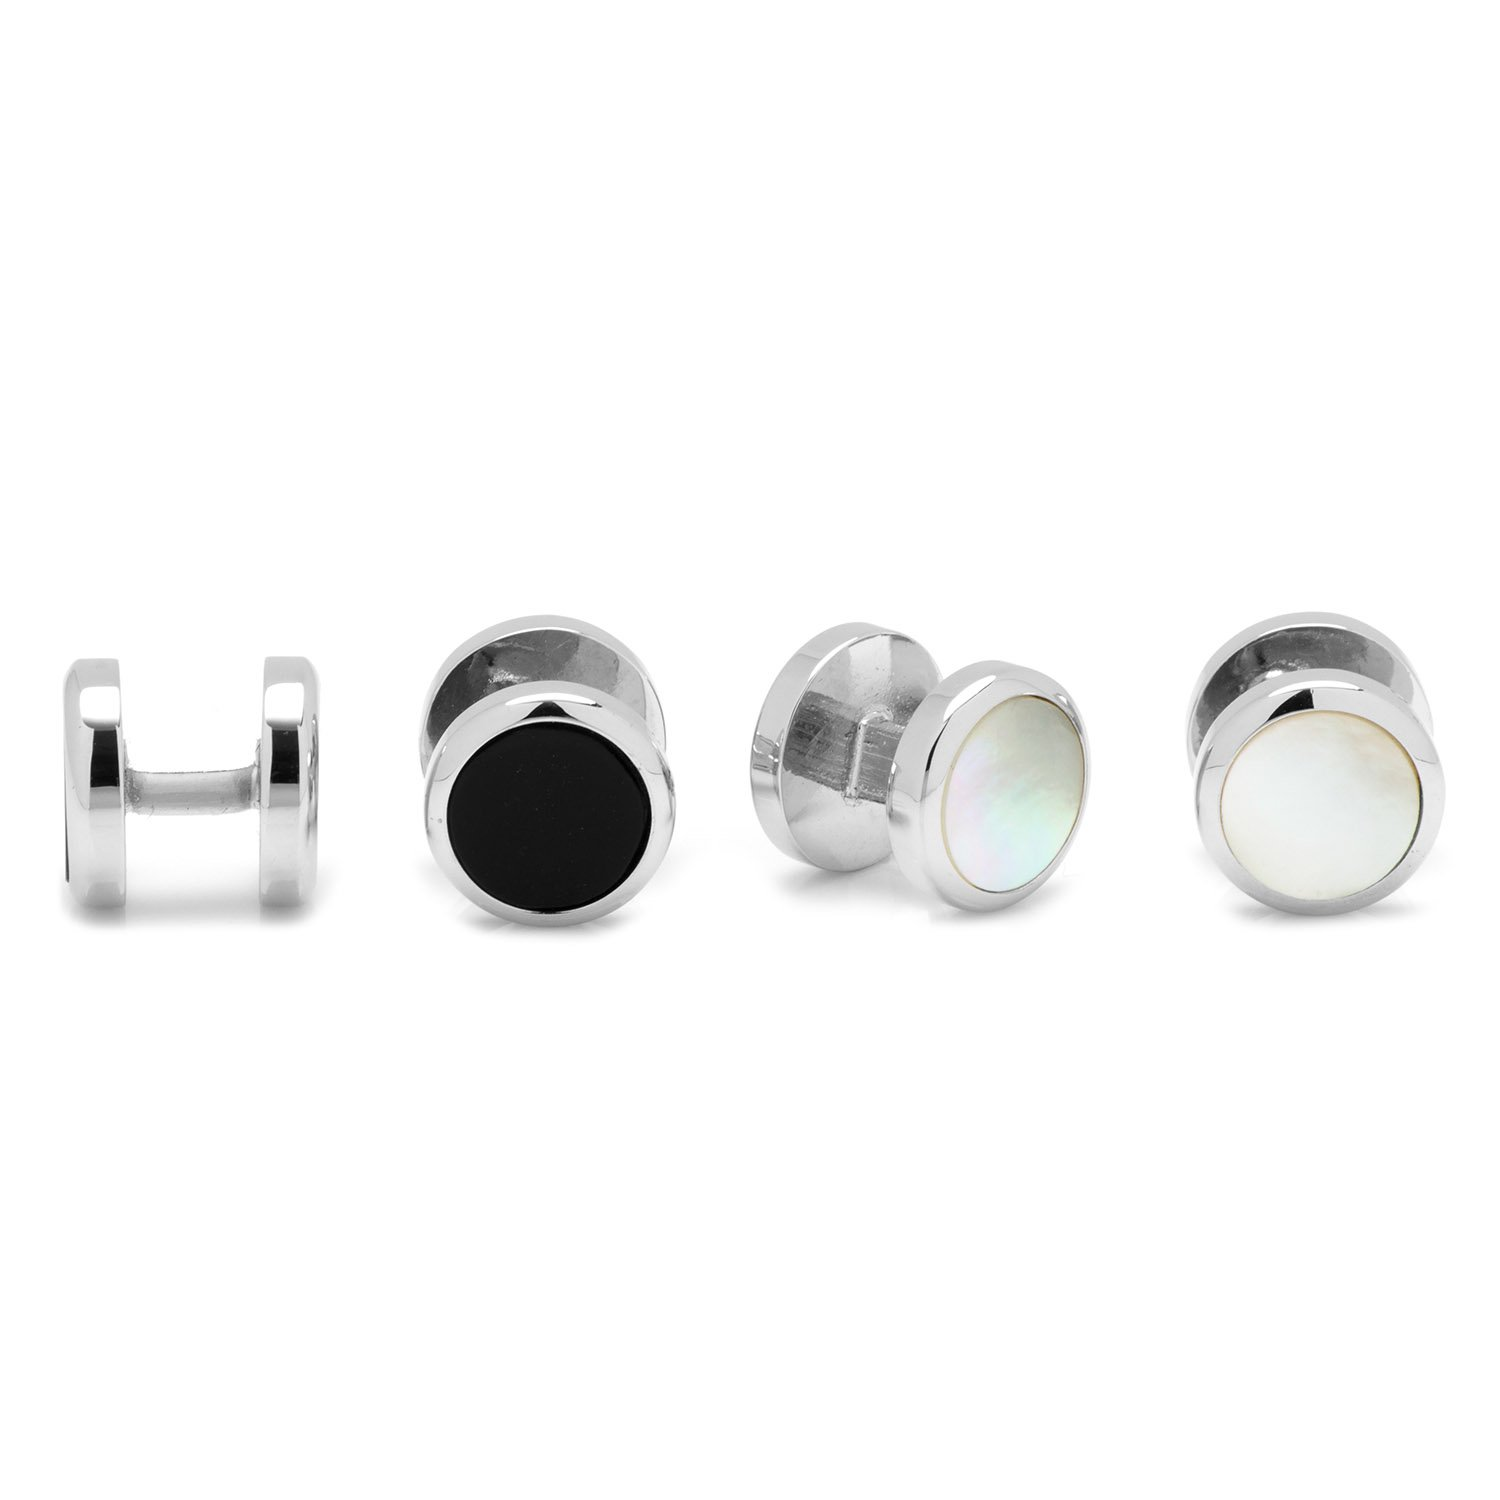 Ox and Bull Trading Co. Double Sided Onyx and Mother of Pearl Round Beveled Studs BL-DSRND-ST